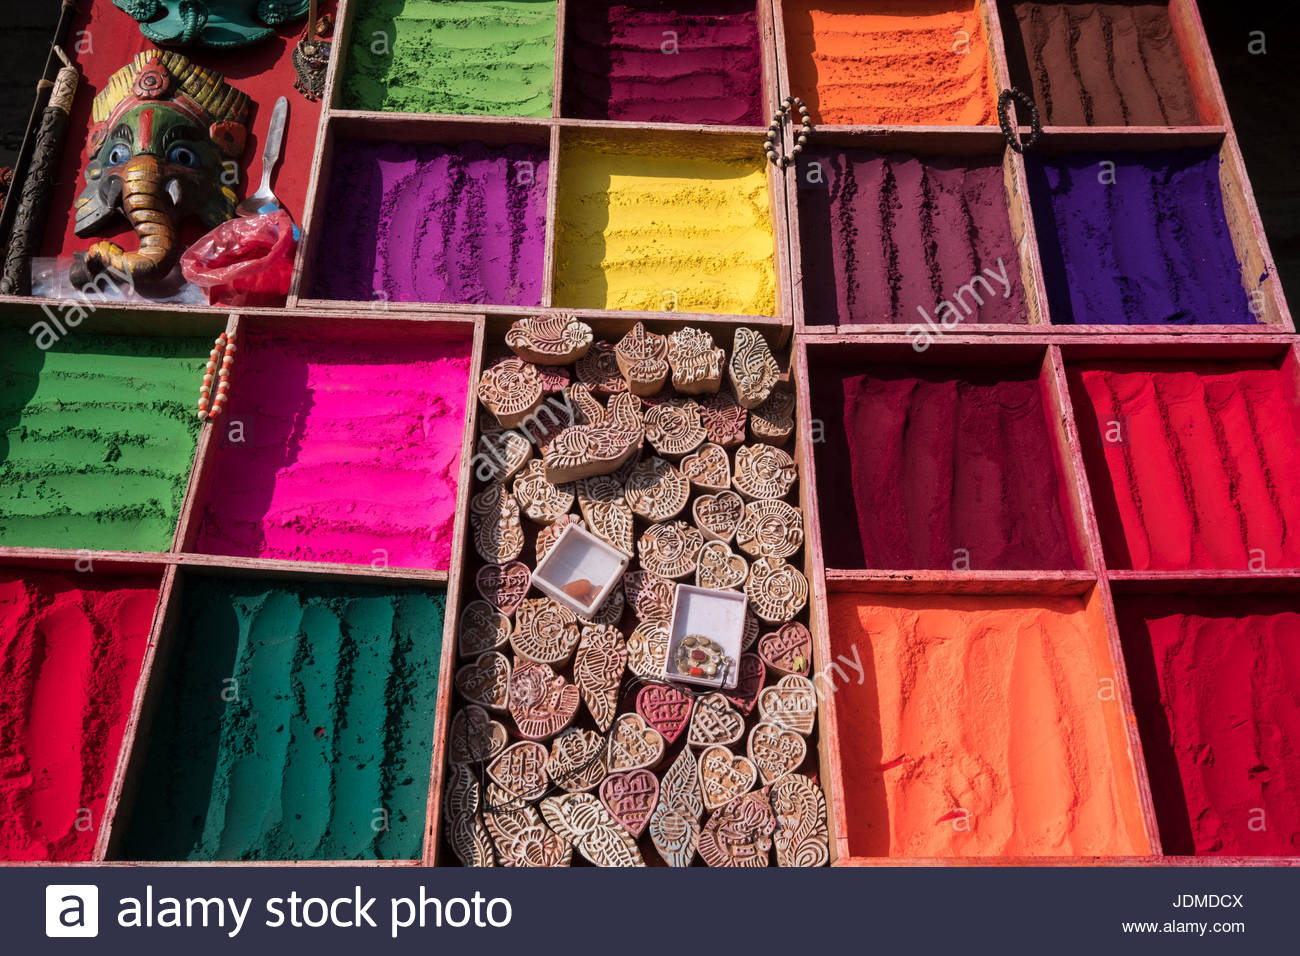 Display of printing stamps and dyes at a market stall in Kathmandu. - Stock Image